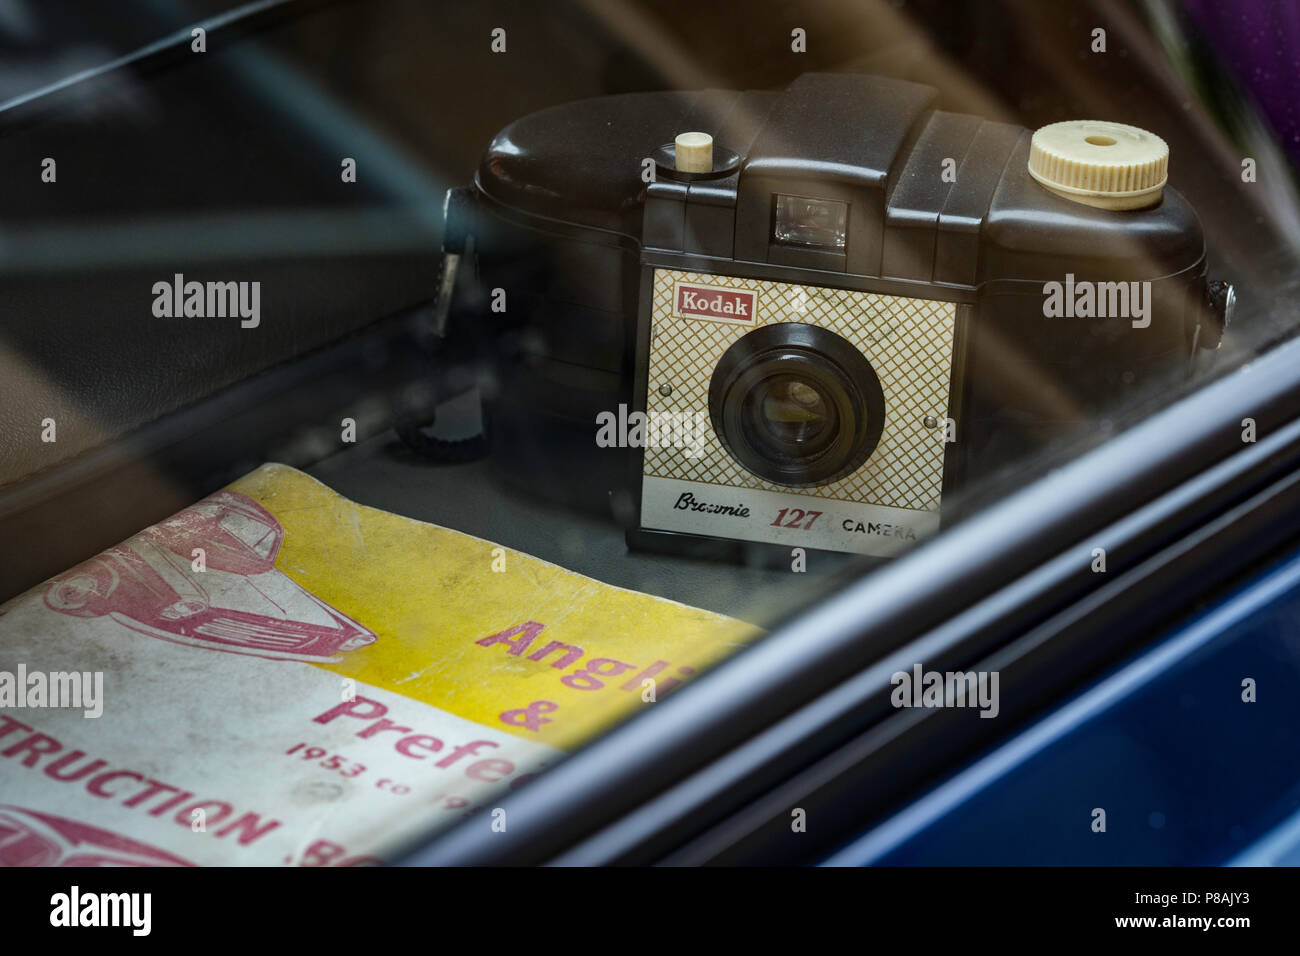 Kodak 127 Brownie camera on parcel shelf of classic Ford Anglia. - Stock Image